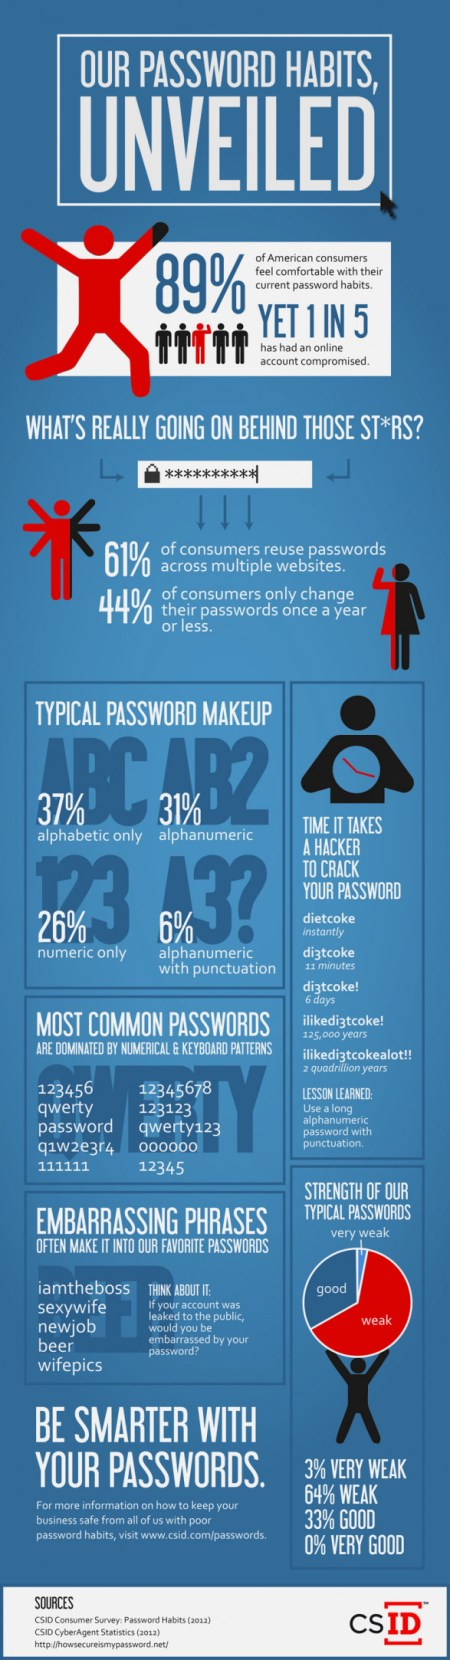 Our Password Habits, Revealed